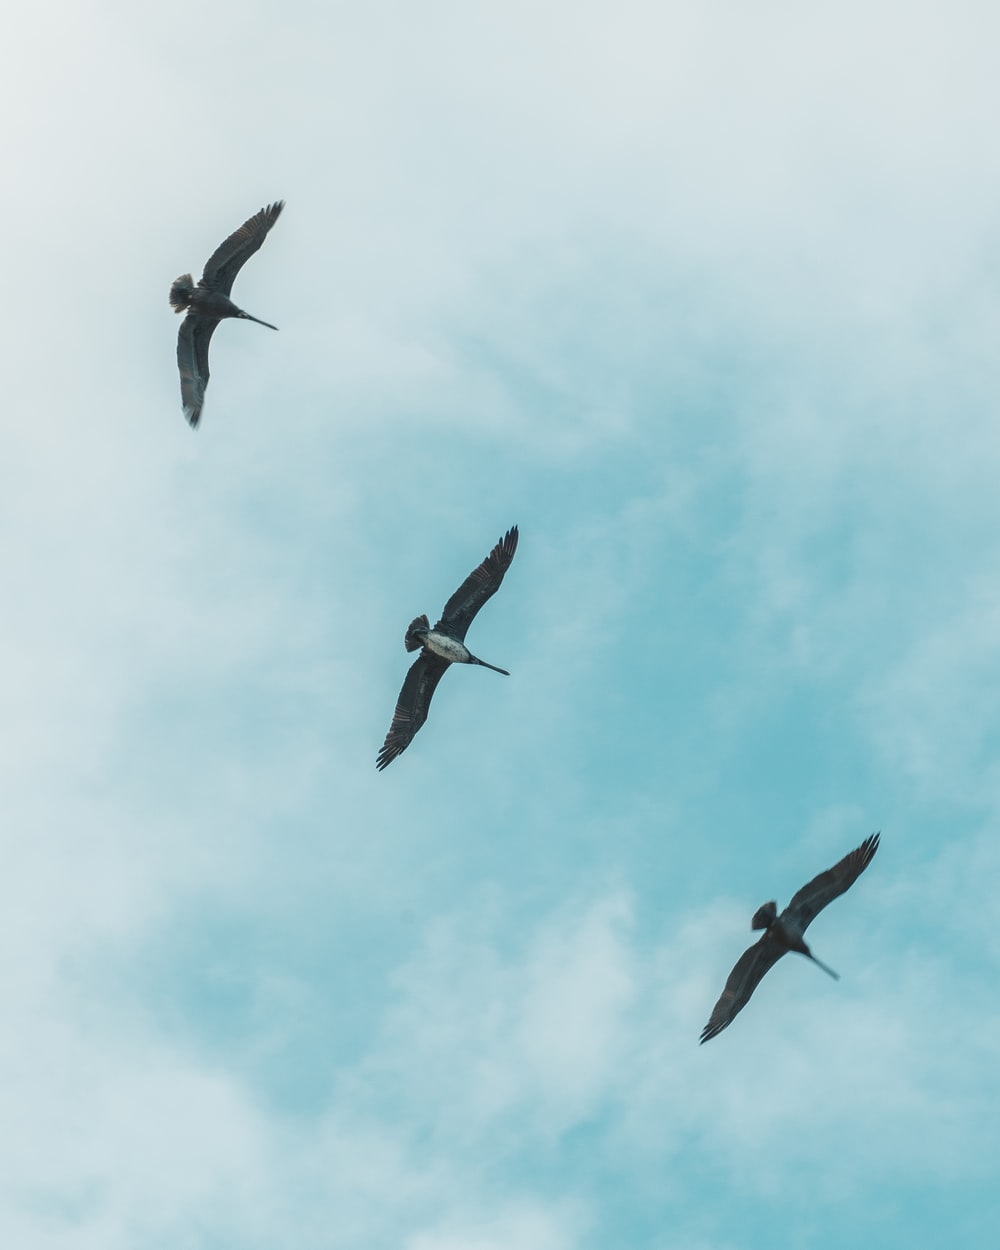 three bird flying on air during daytime